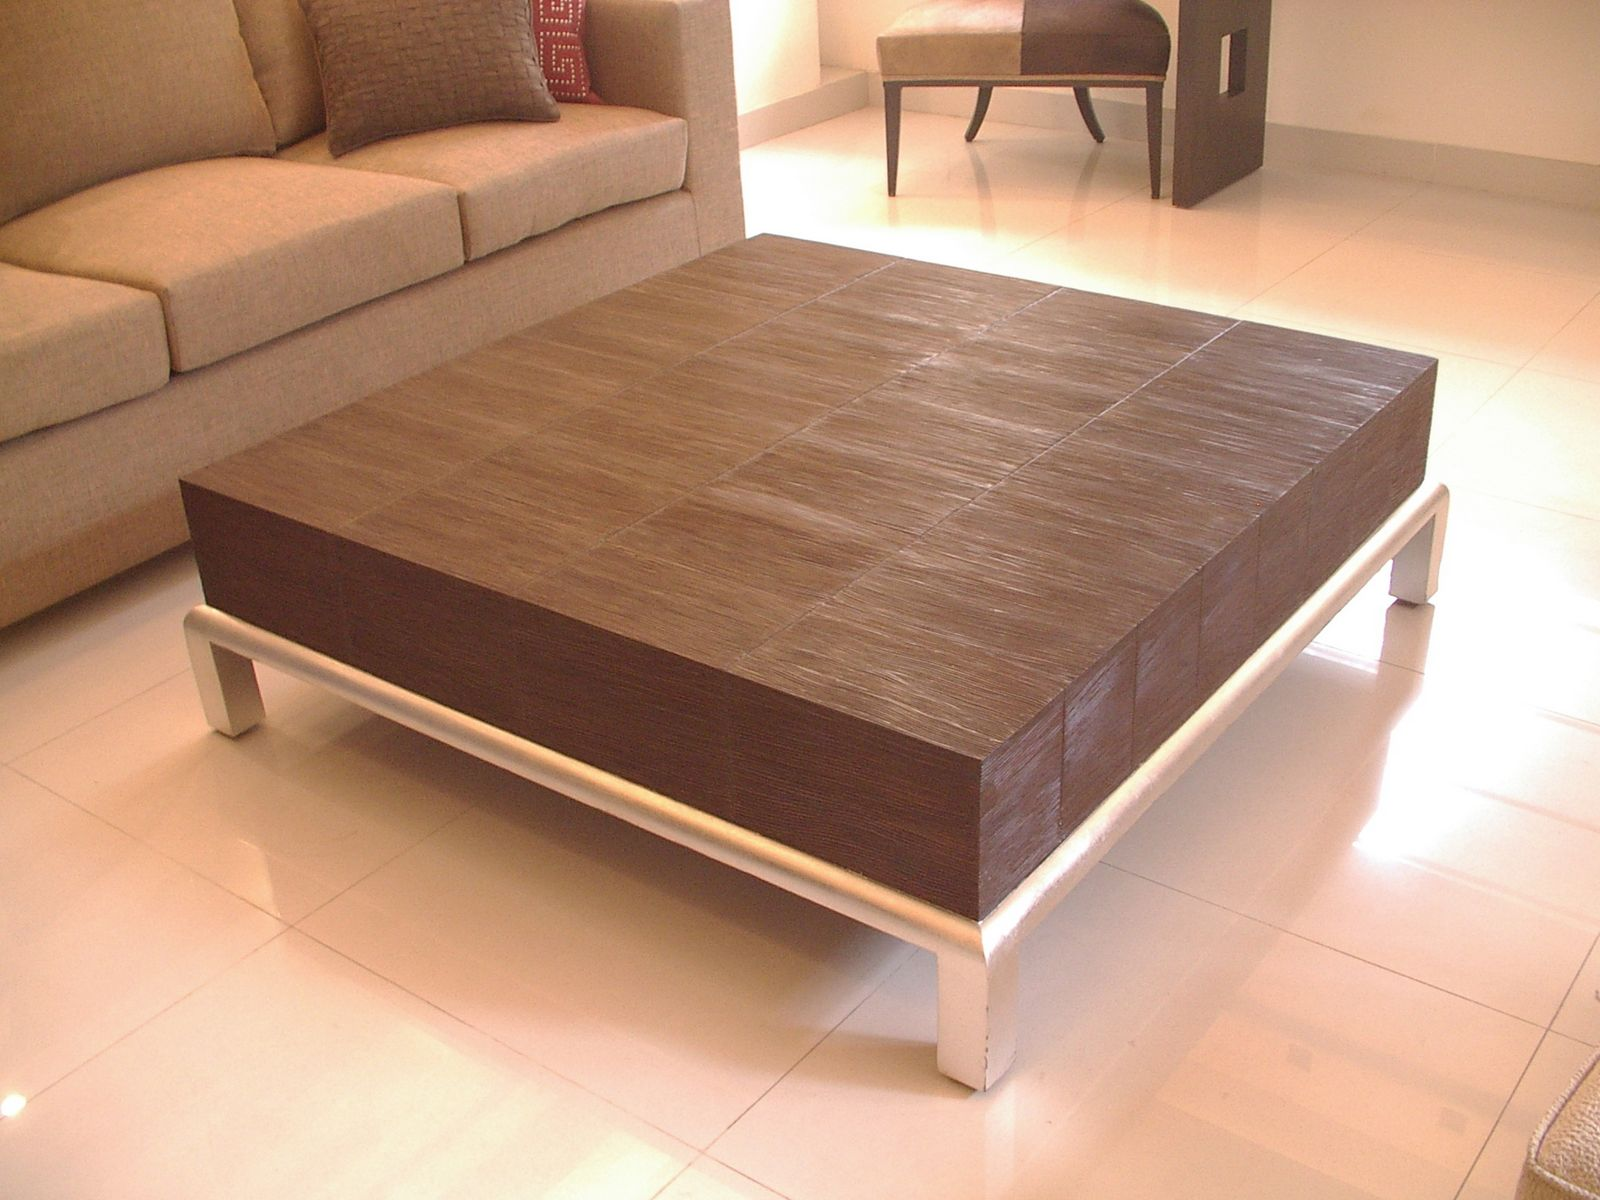 A Coffee Table That Works Wonders ~ Designer Furniture Devotee -> Table Avec Pouf